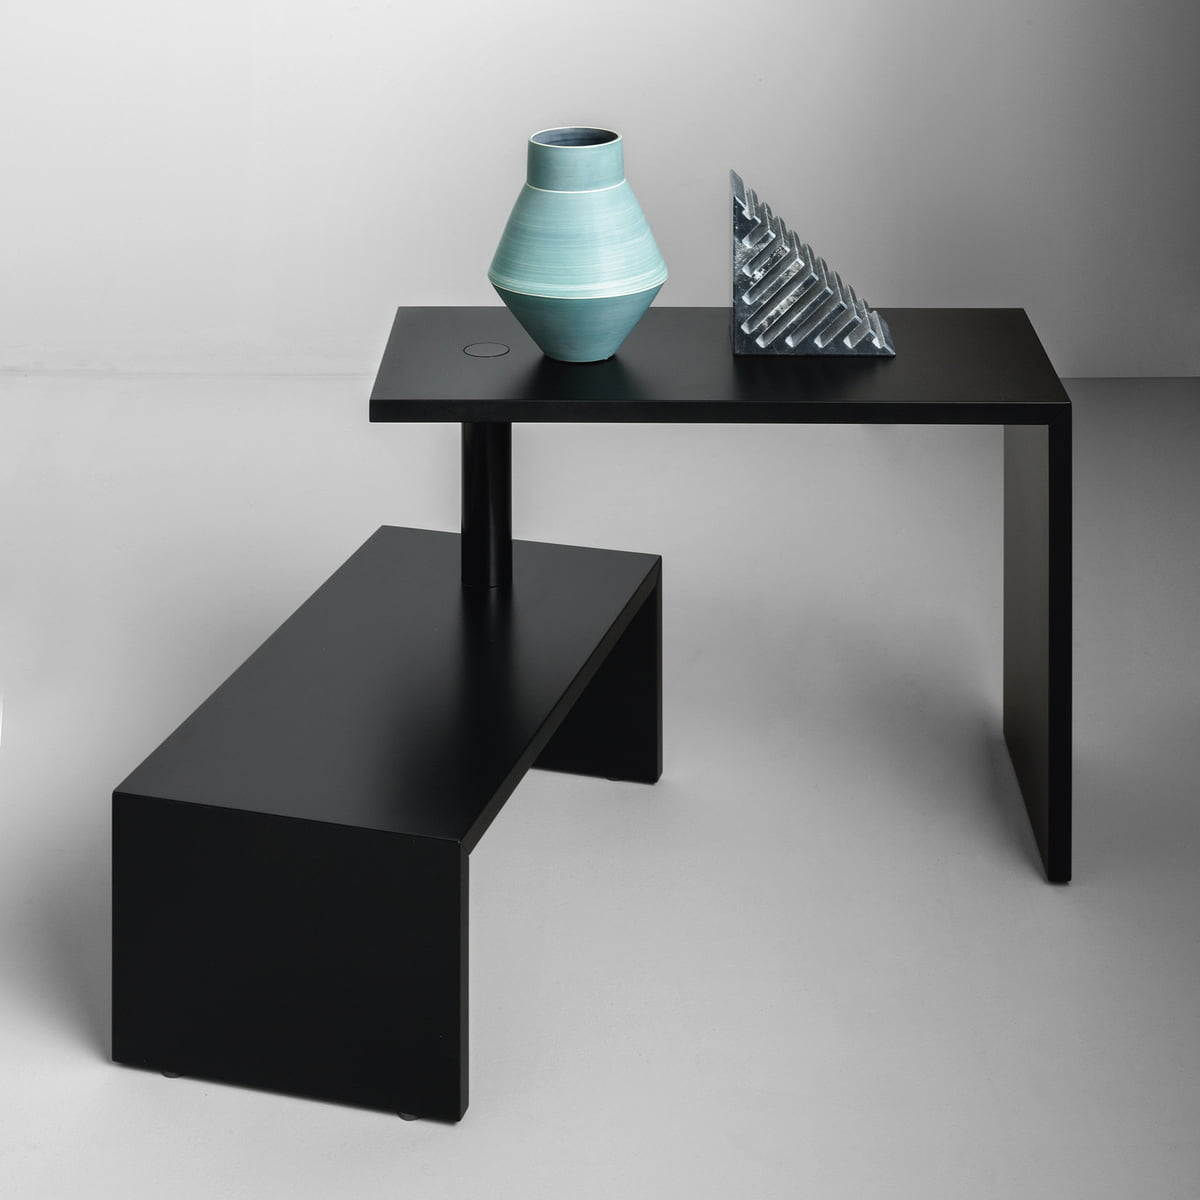 the basello couch table by zanotta. Black Bedroom Furniture Sets. Home Design Ideas